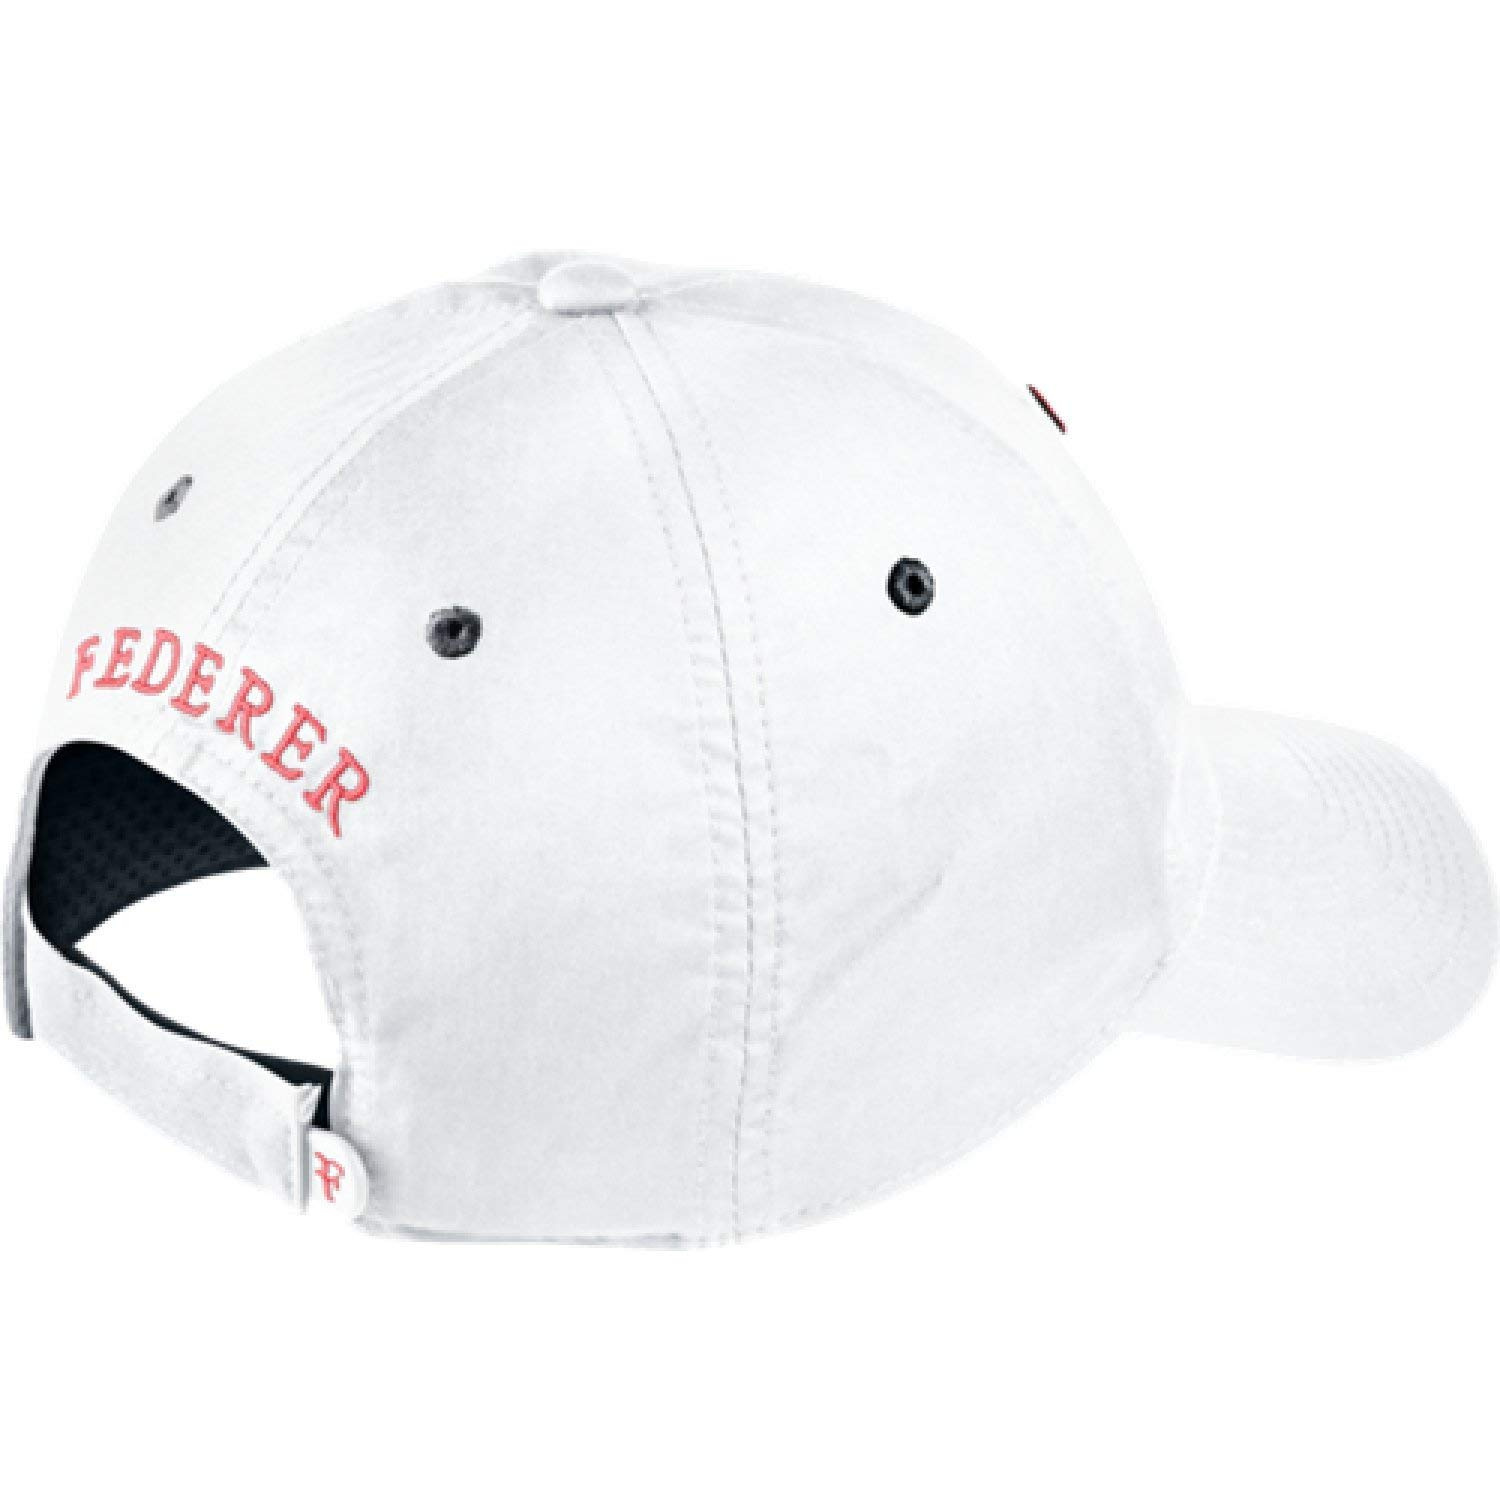 d344be33 Federer Cap Sports & Outdoors: Buy Online from Fishpond.com.au